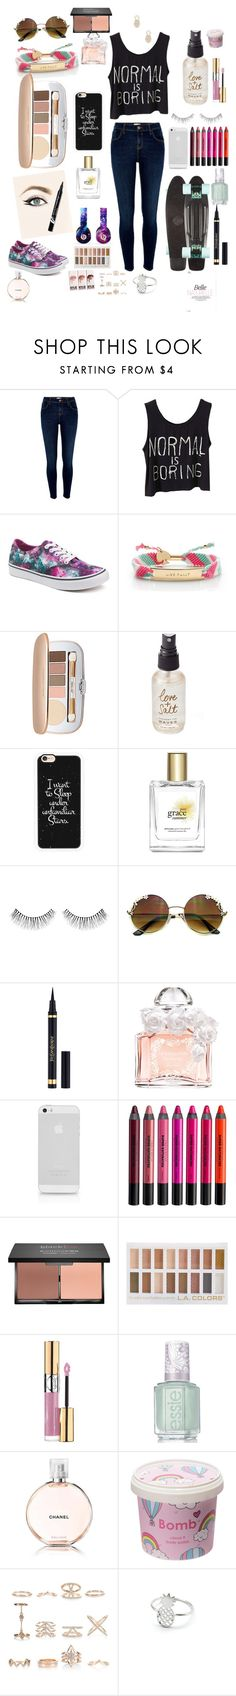 """""""normal is boring"""" by emma-r-villanueva ❤ liked on Polyvore featuring River Island, Vans, Kate Spade, Jane Iredale, Olivine, Casetify, philosophy, Beats by Dr. Dre, NARS Cosmetics and Yves Saint Laurent"""